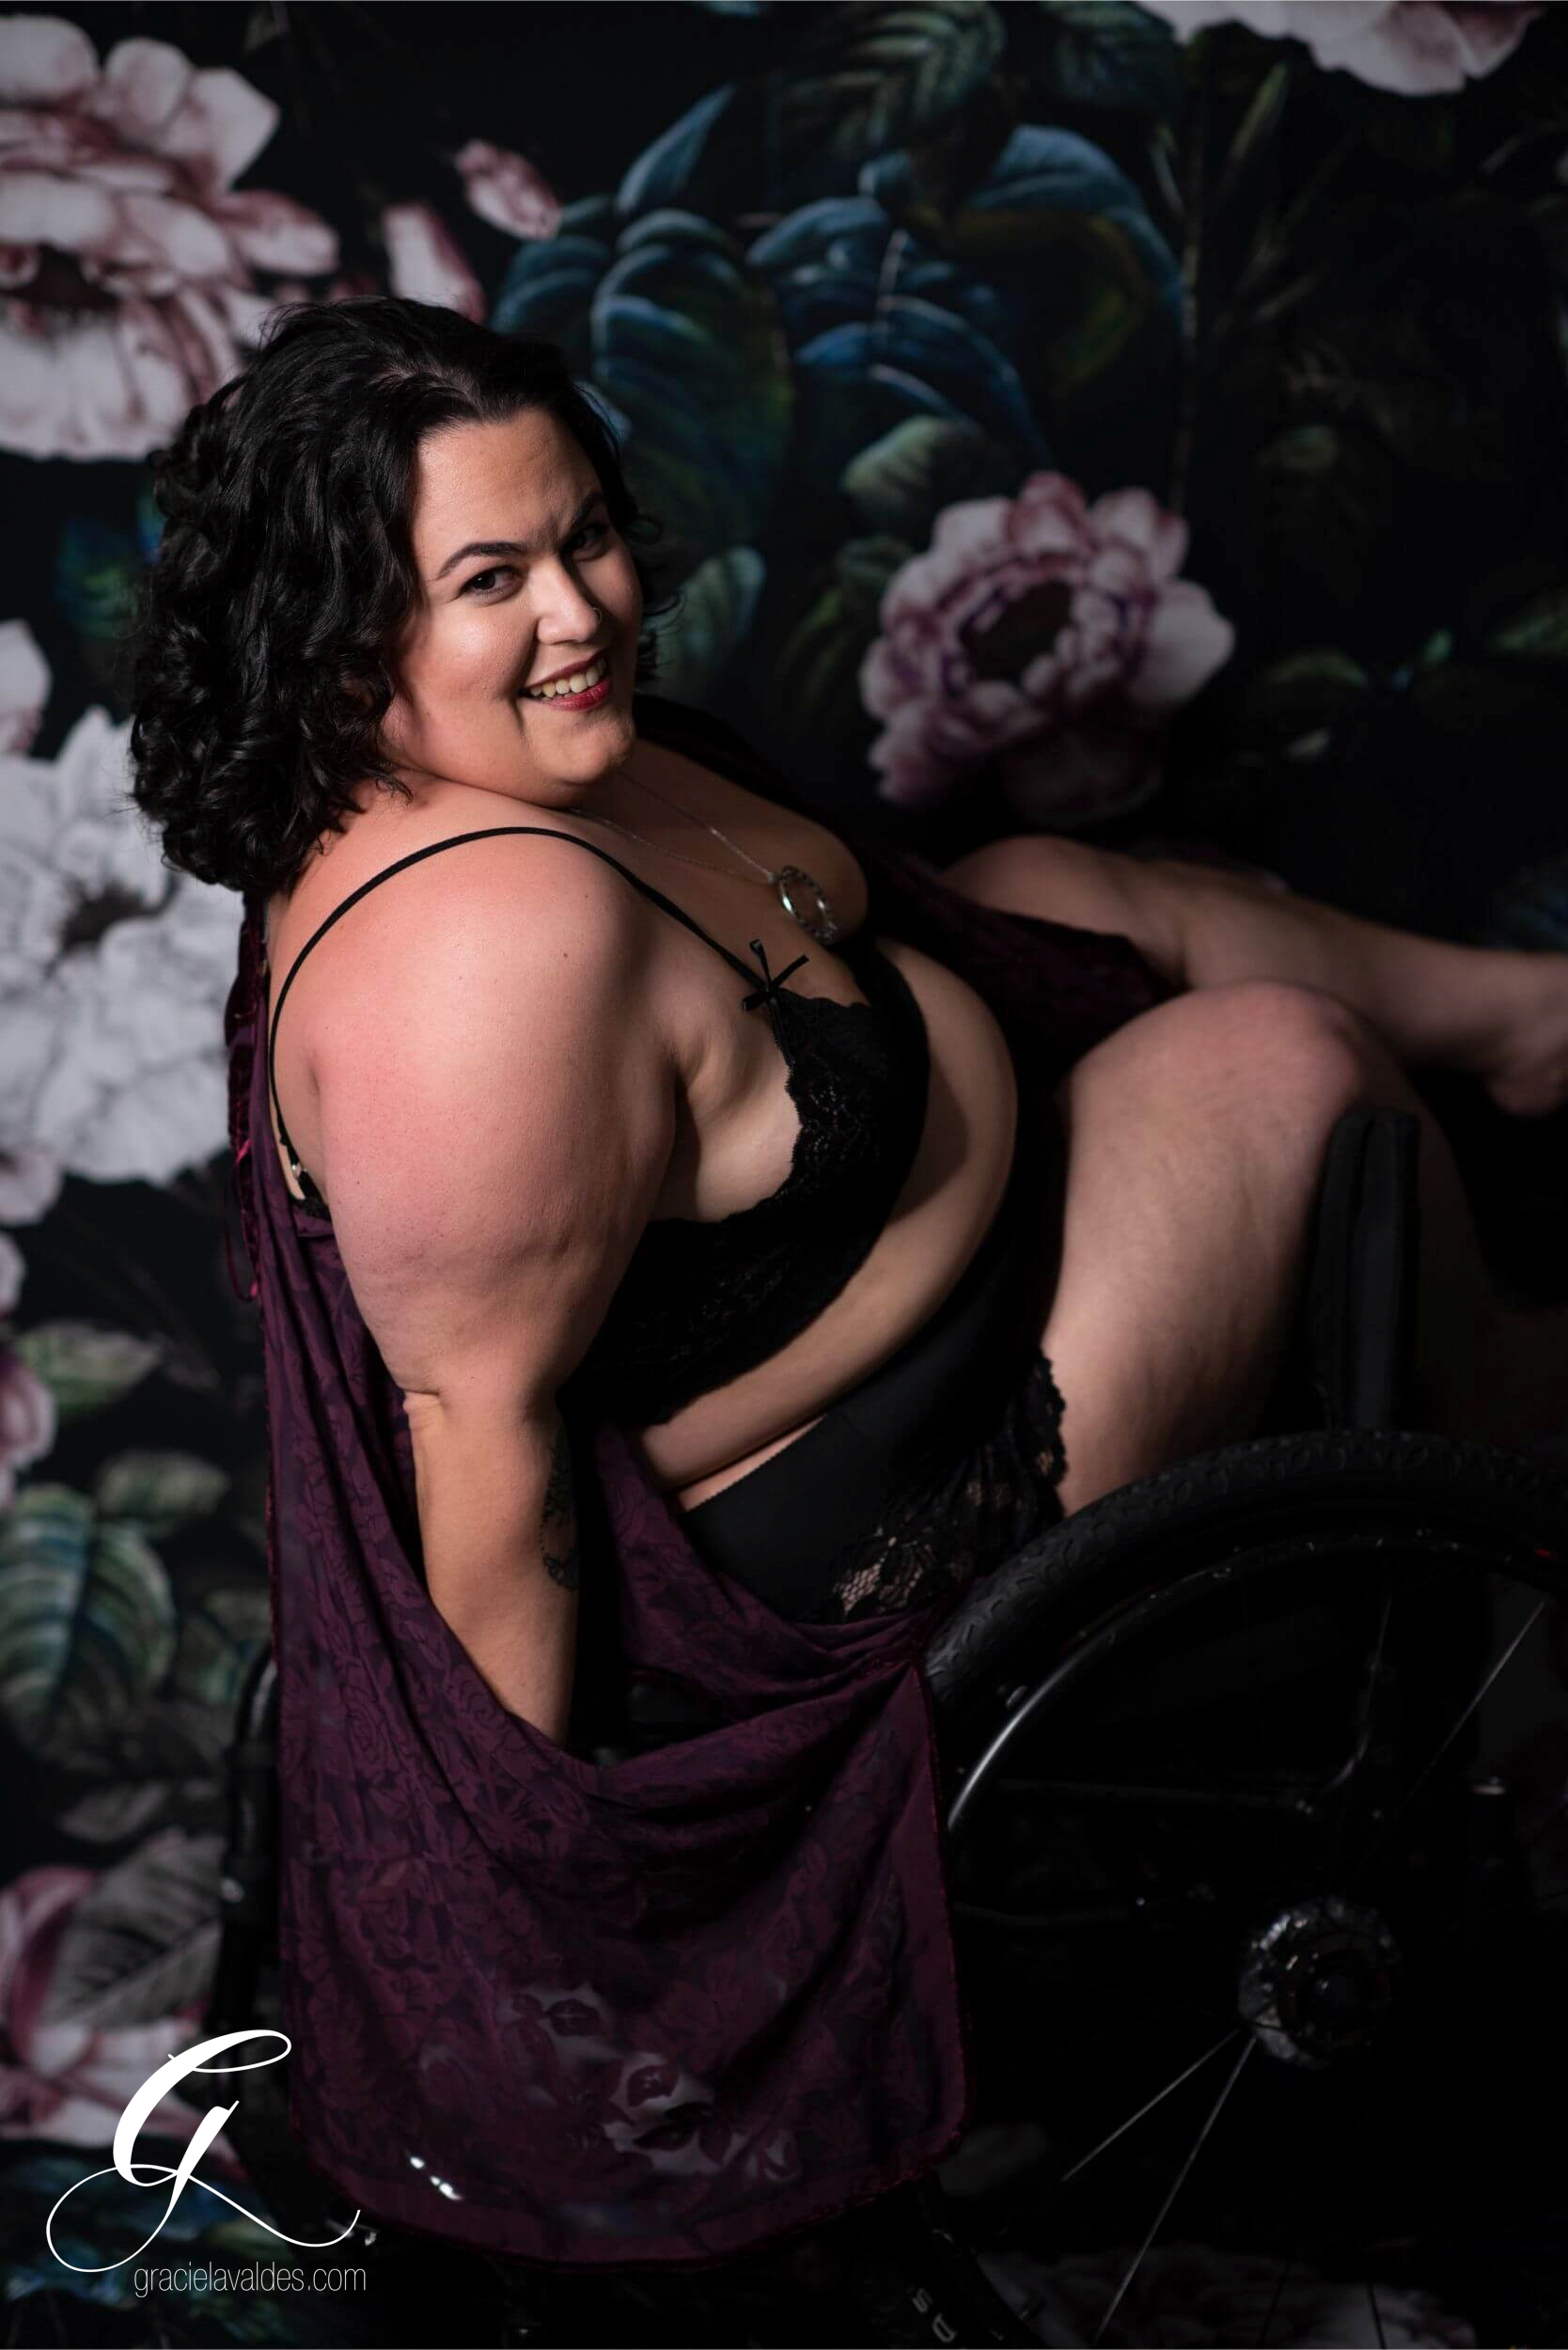 Genderqueer Boudoir Disabled Boudoir by Graciela Valdes 2.jpg